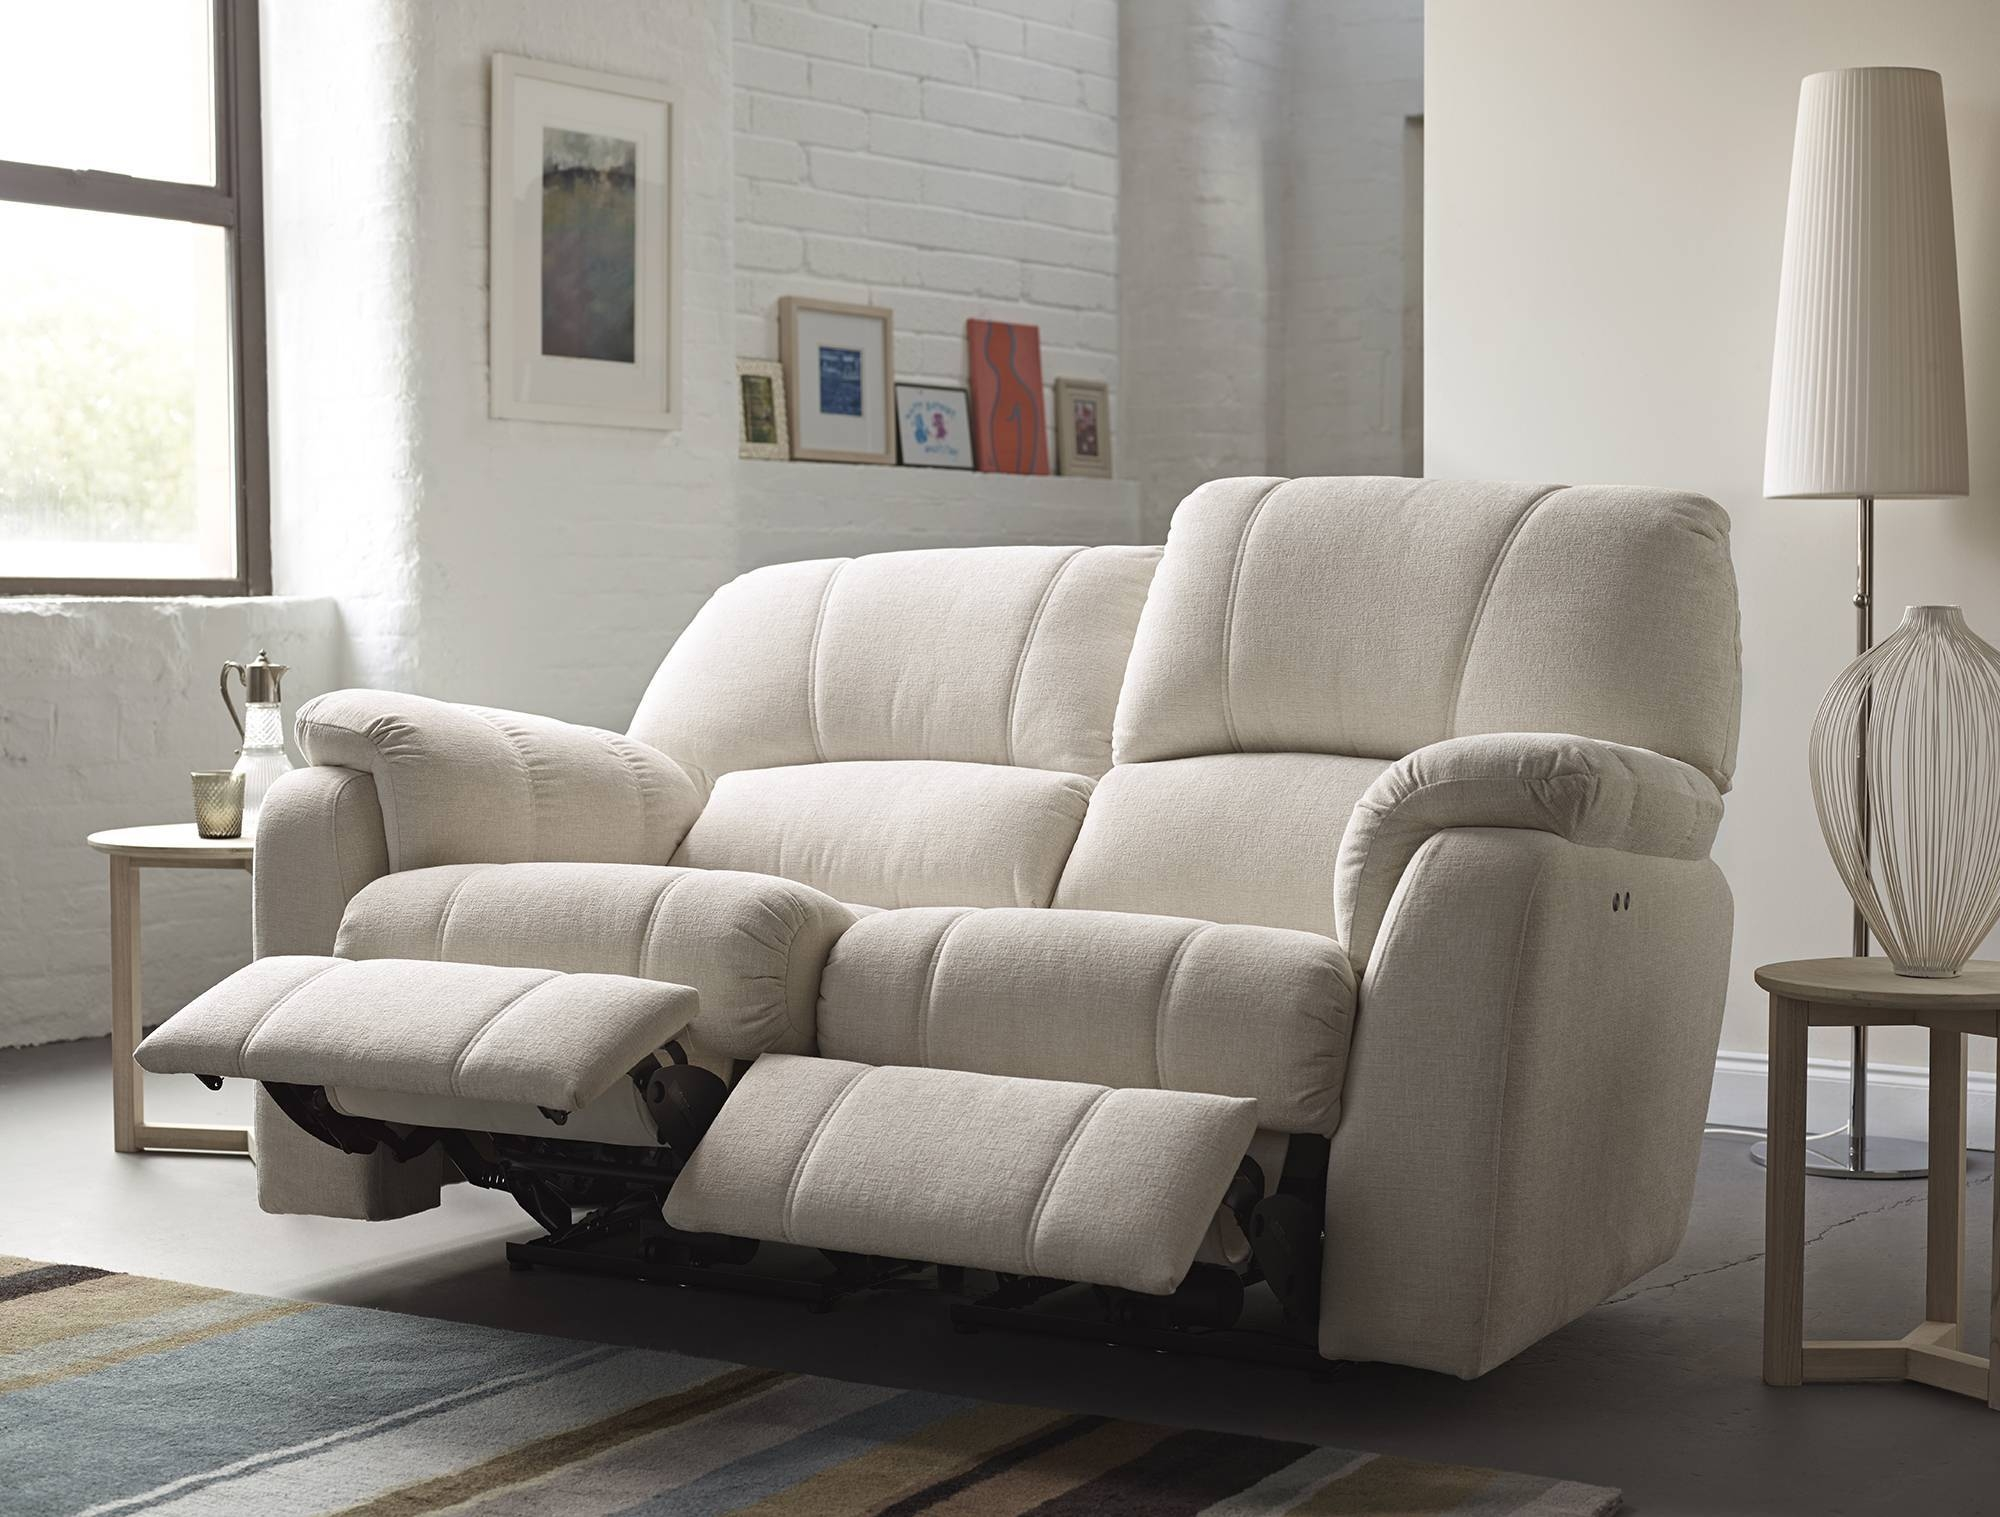 Two Seater Recliner Sofa | Sofas Decoration throughout 2 Seat Recliner Sofas (Image 29 of 30)